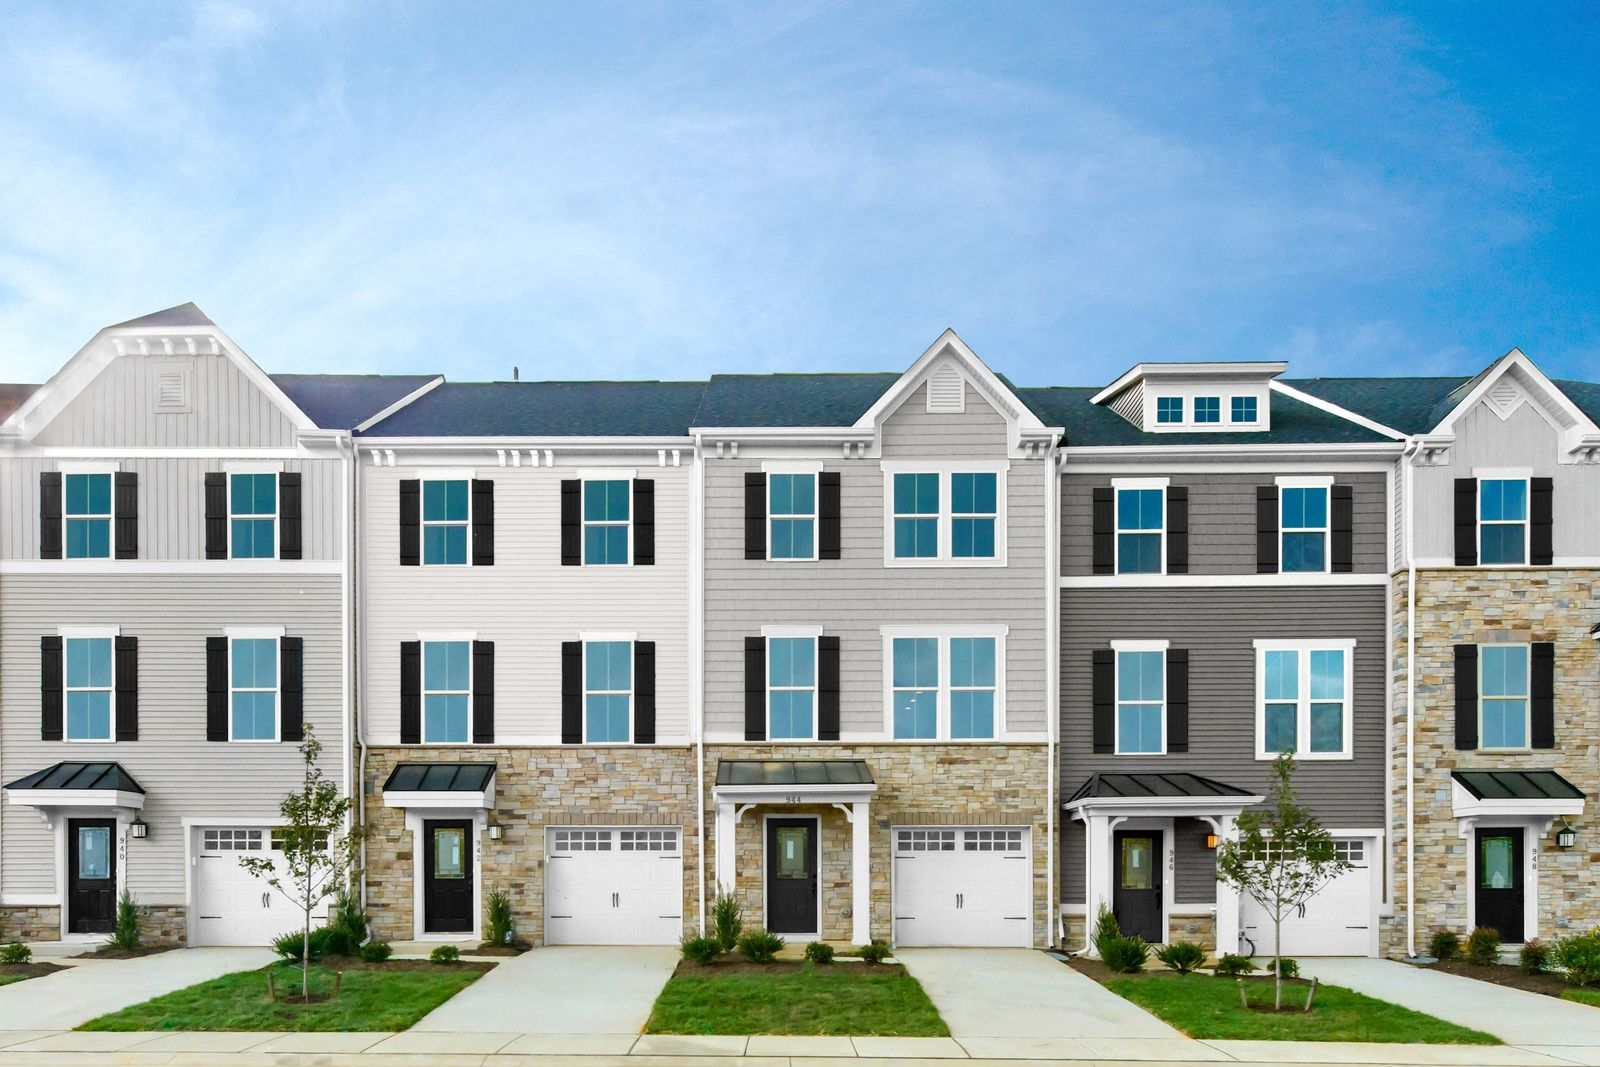 Welcome to Aspen Woods: Now scheduling appointments!:Spacious, 3-story townhomes at a great value in Cincy! Located inside the I-275 loop near Rt. 32, Aspen Woods offers 3 bdr townhomes w/ attached garage. From the low $200s.Schedule your visit today!